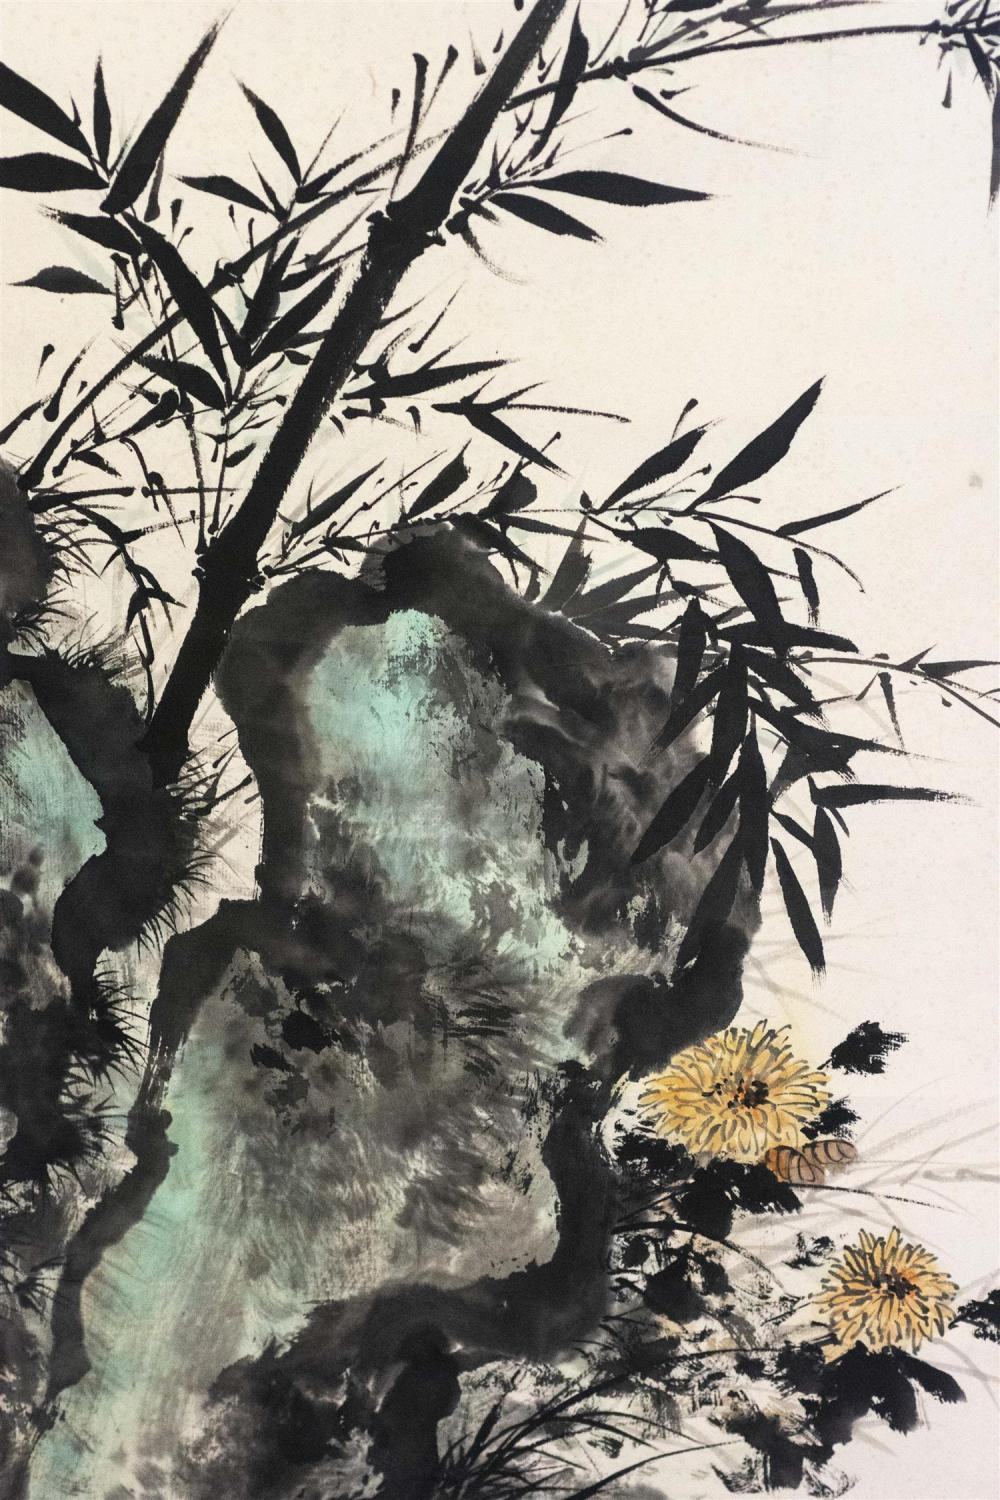 Lot 1053: CHINESE SCROLL PAINTING ON PAPER By Li Xiongcai. Depicting bamboo, rockery and chrysanthemums. Marked with calligraphy and seal mark...